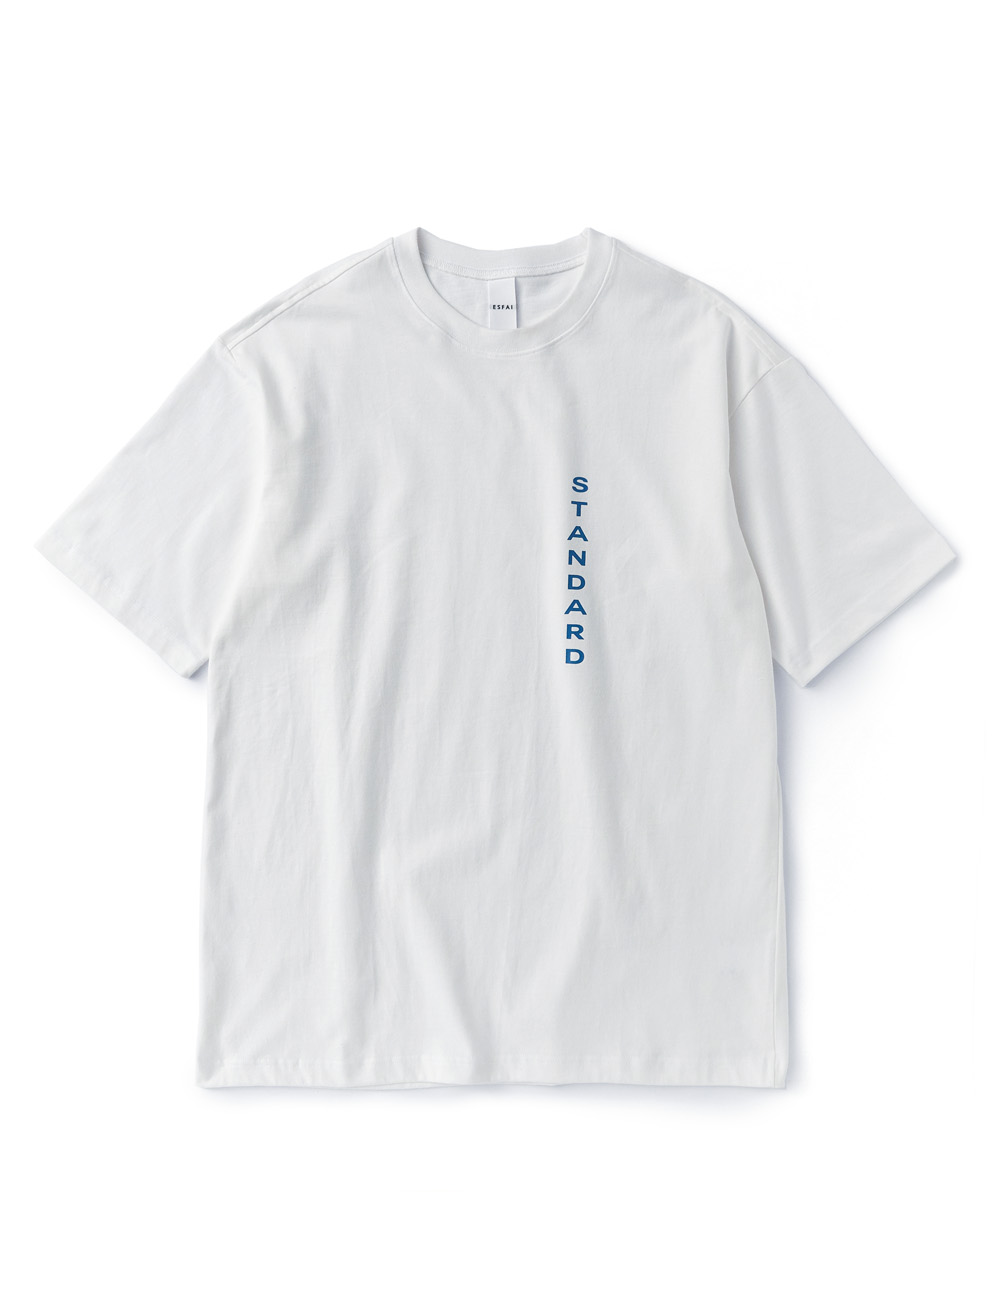 [ESFAI] sue03 standard T shirts (White)